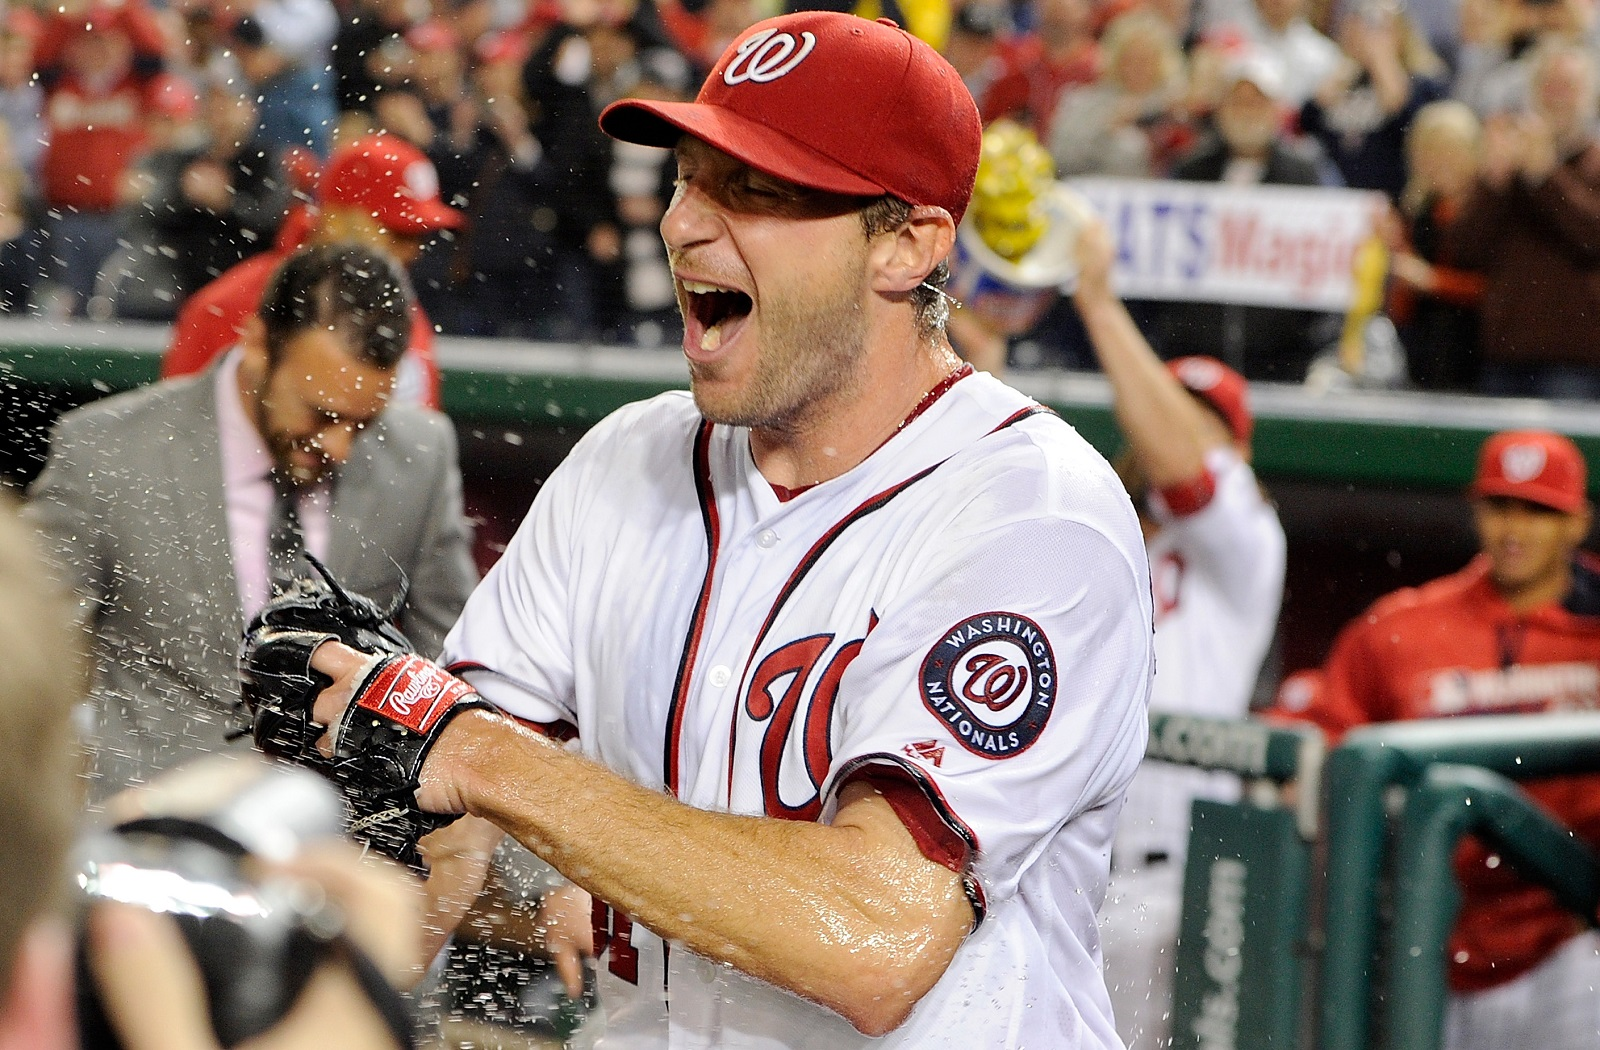 Washington Nationals' Max Scherzer struck out 20 batters, tying the MLB record. (Photo by Greg Fiume/Getty Images)